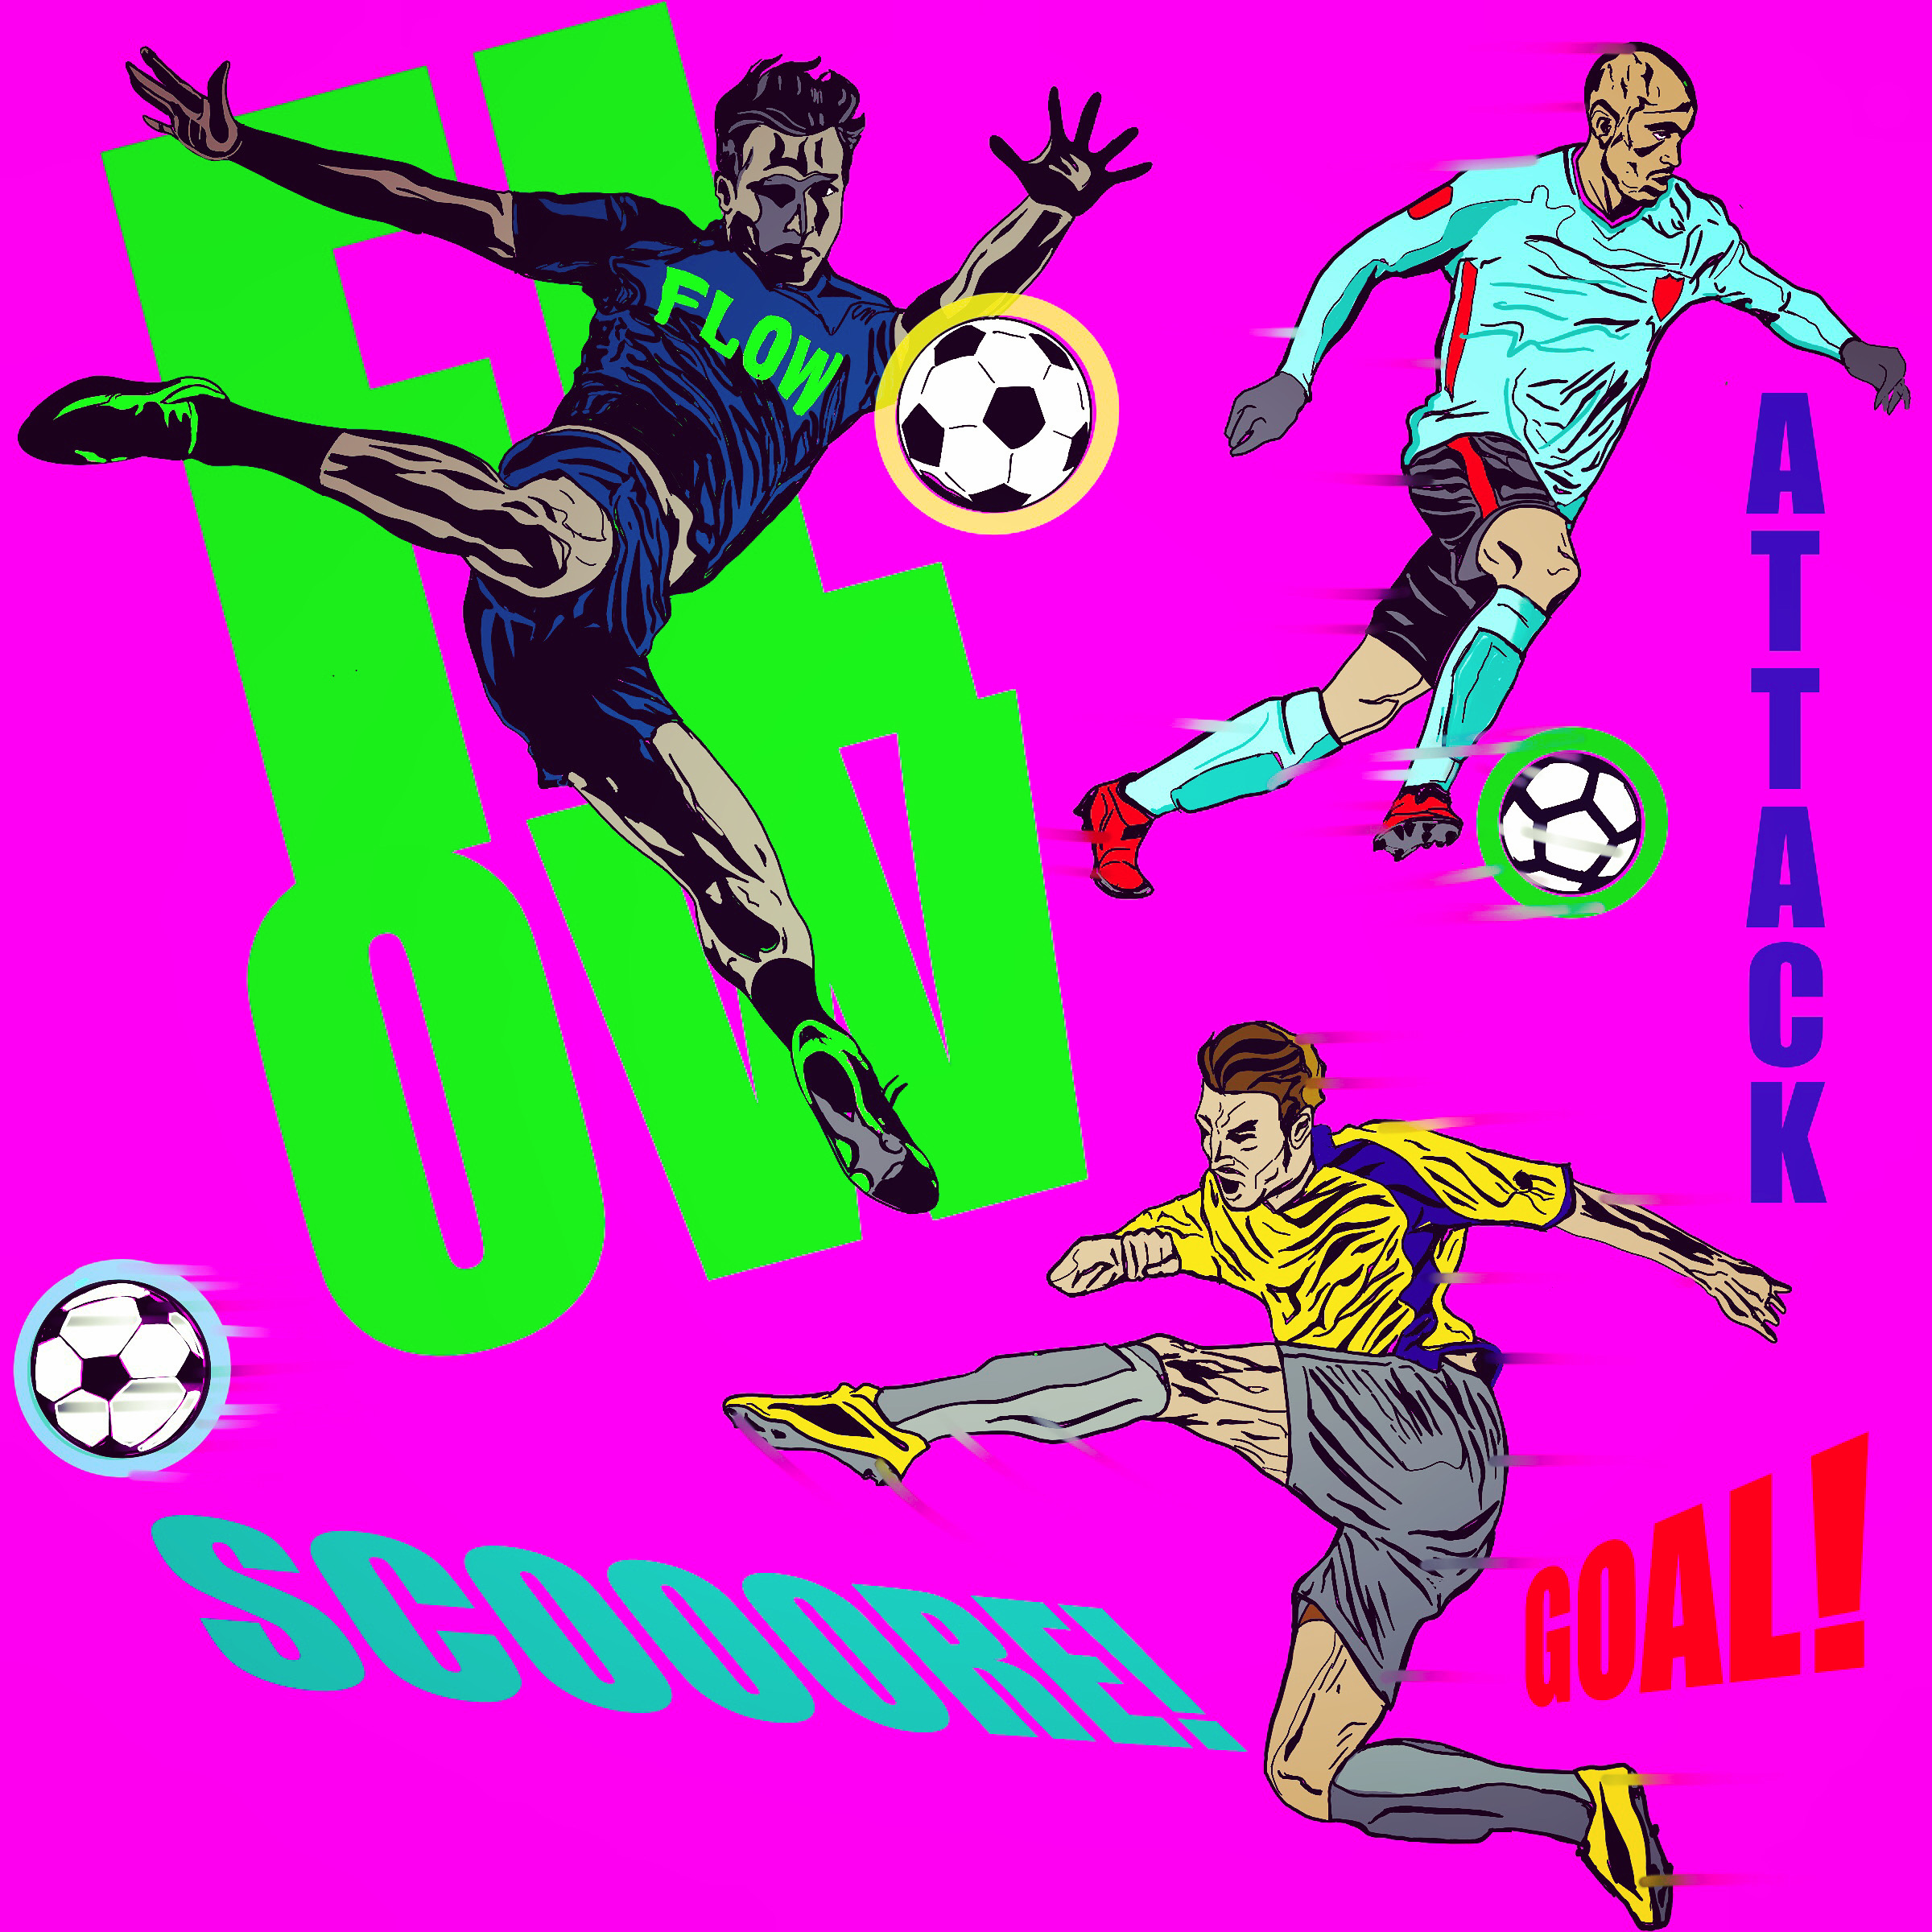 Apparel soccer design